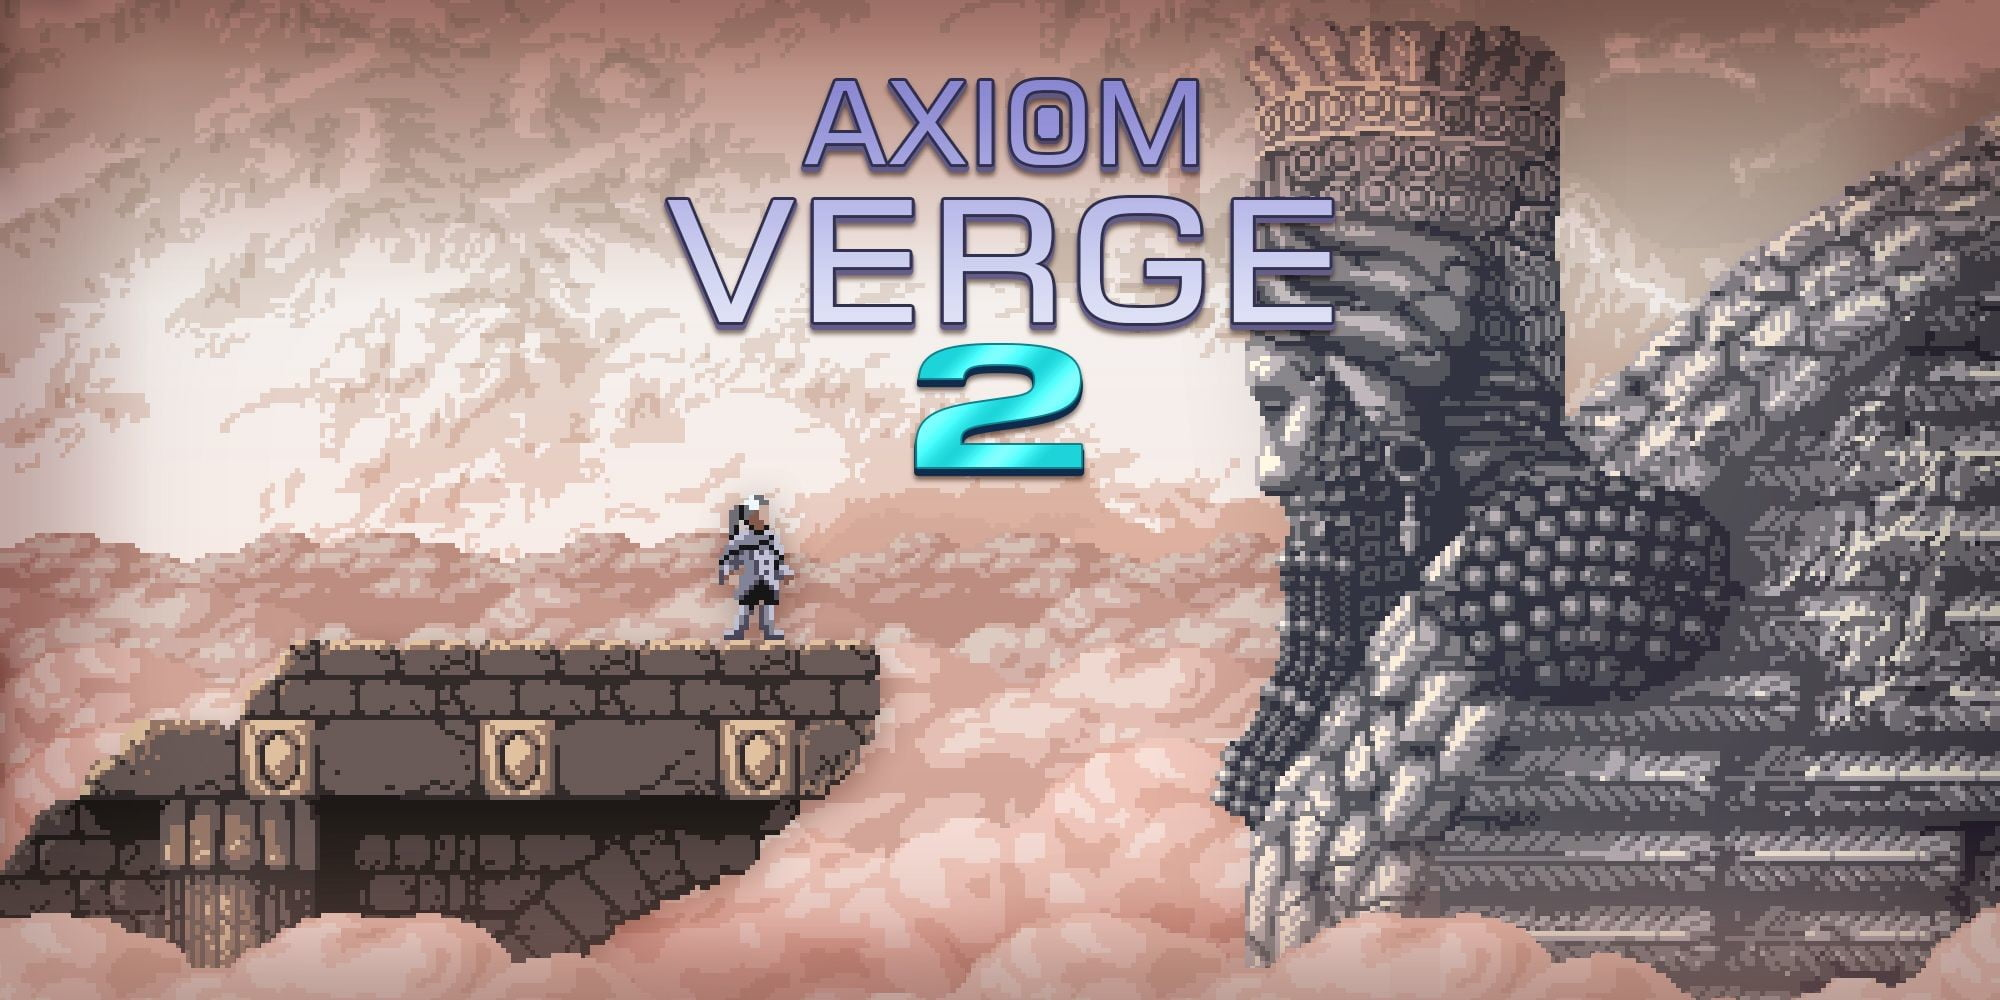 Axiom Verge 2 brings classic Metroidvania action to Nintendo Switch in 2020